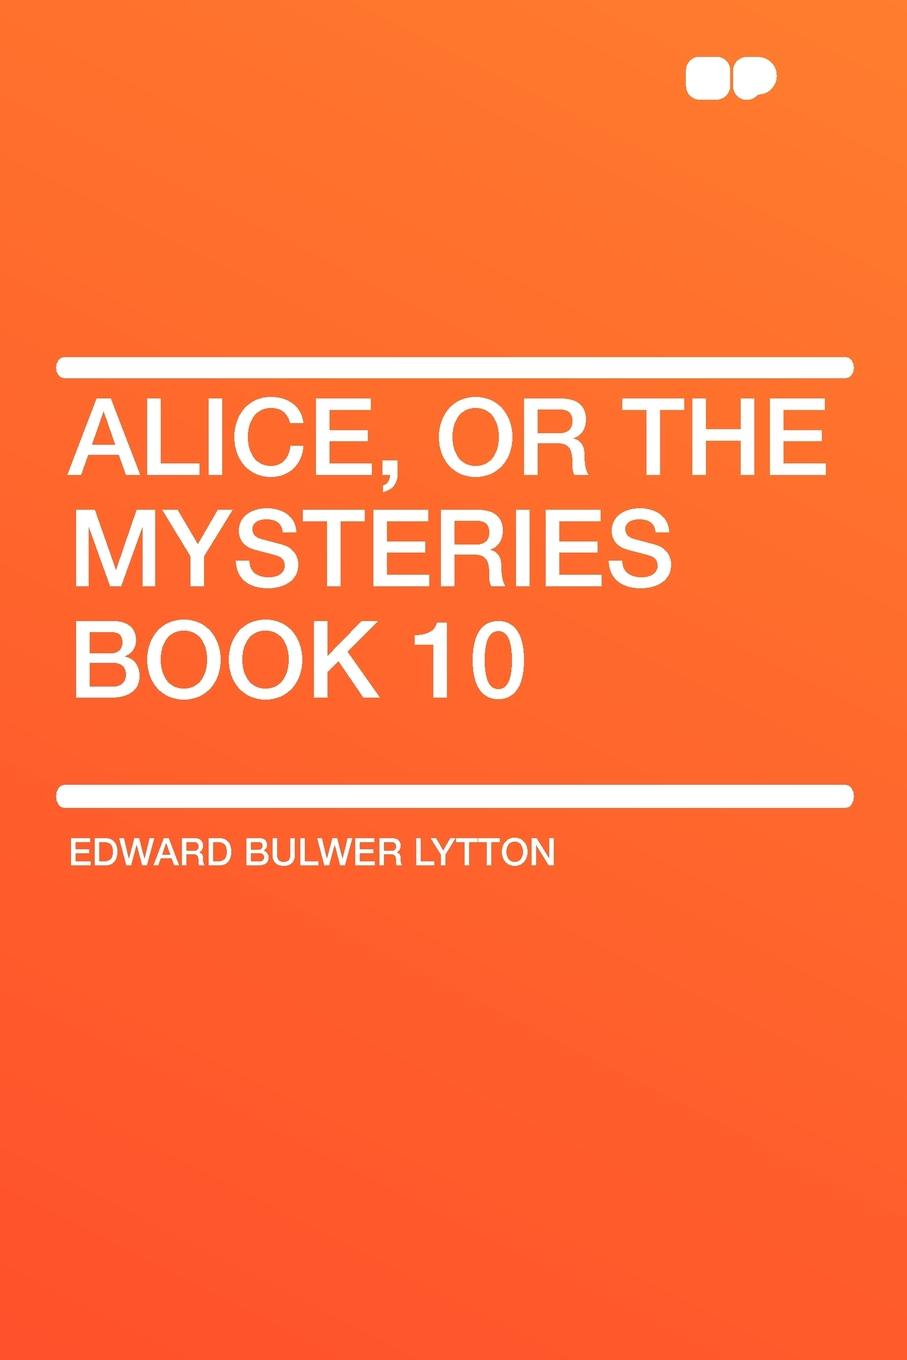 Edward Bulwer Lytton Alice, or the Mysteries Book 10 edward bulwer lytton alice or the mysteries